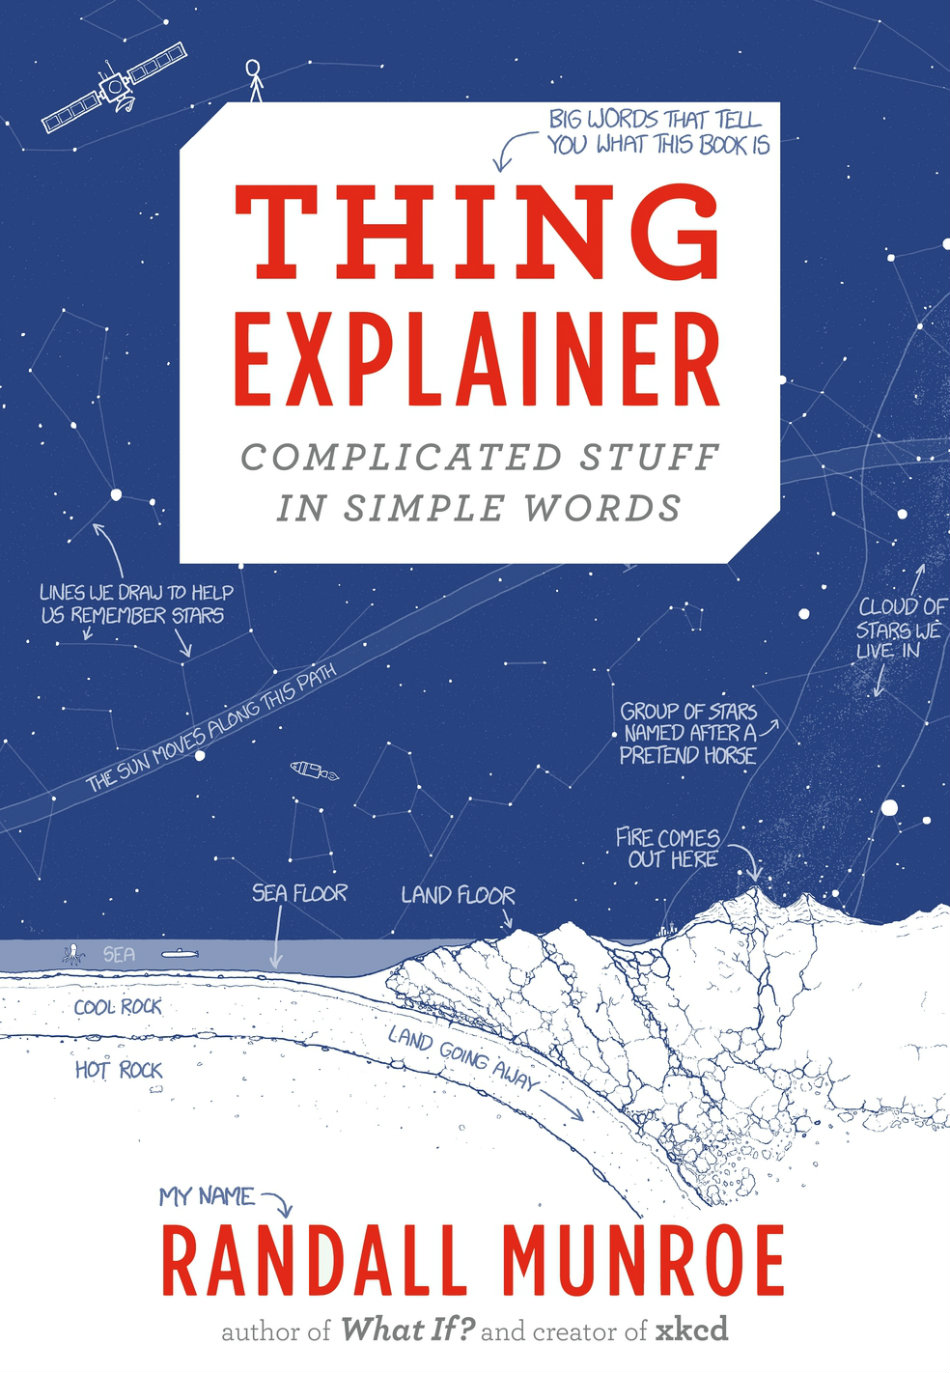 Randall Munroe announced through his publisher that his recent book Thing Explainer: Complicated Stuff in Simple Words will now figure in high school textbooks. Photo credit: